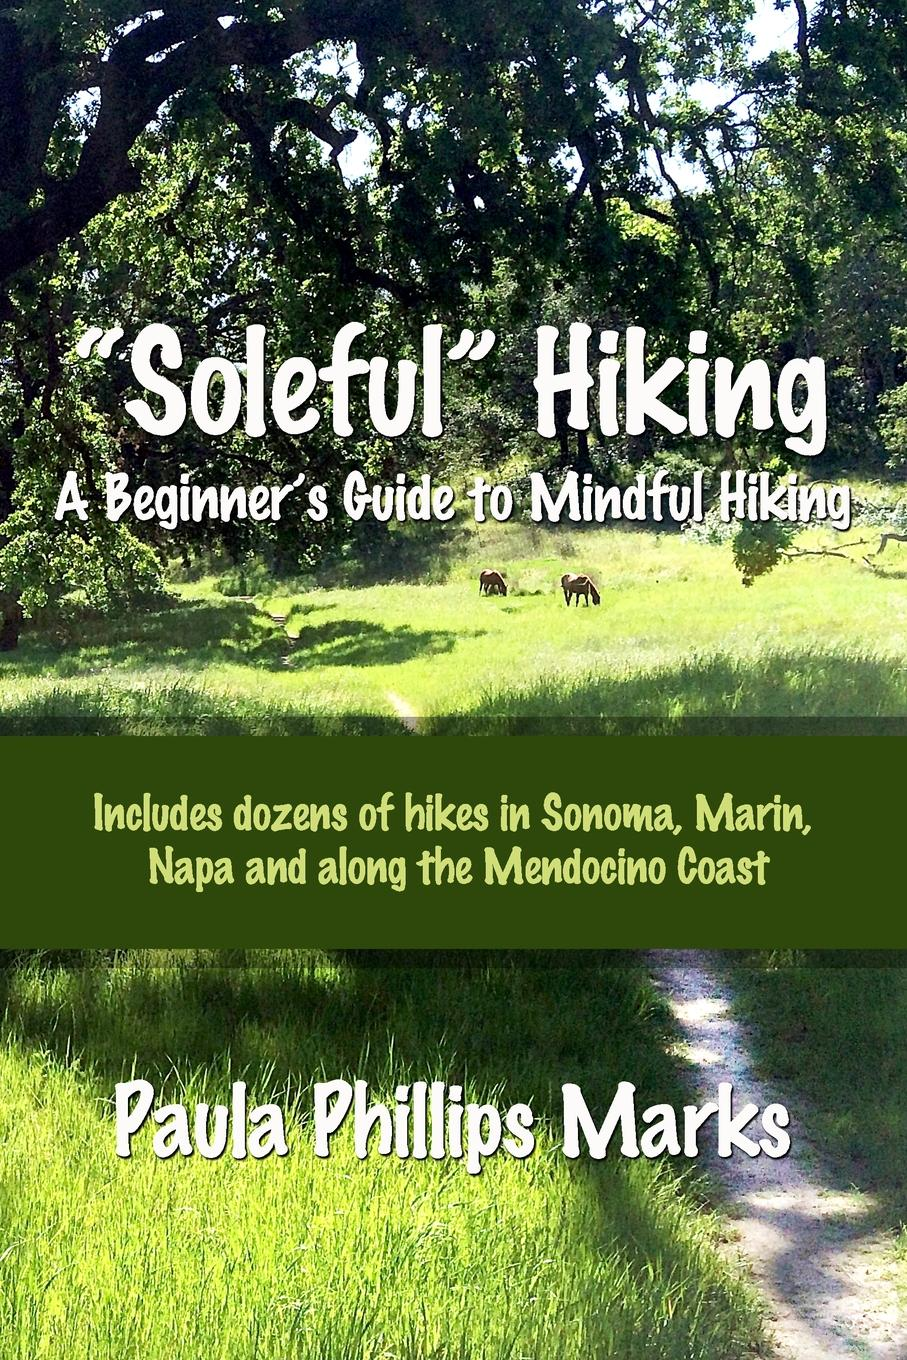 """Paula Phillips Marks. """"Soleful"""" Hiking - A Beginner.s Guide to Mindful Hiking"""